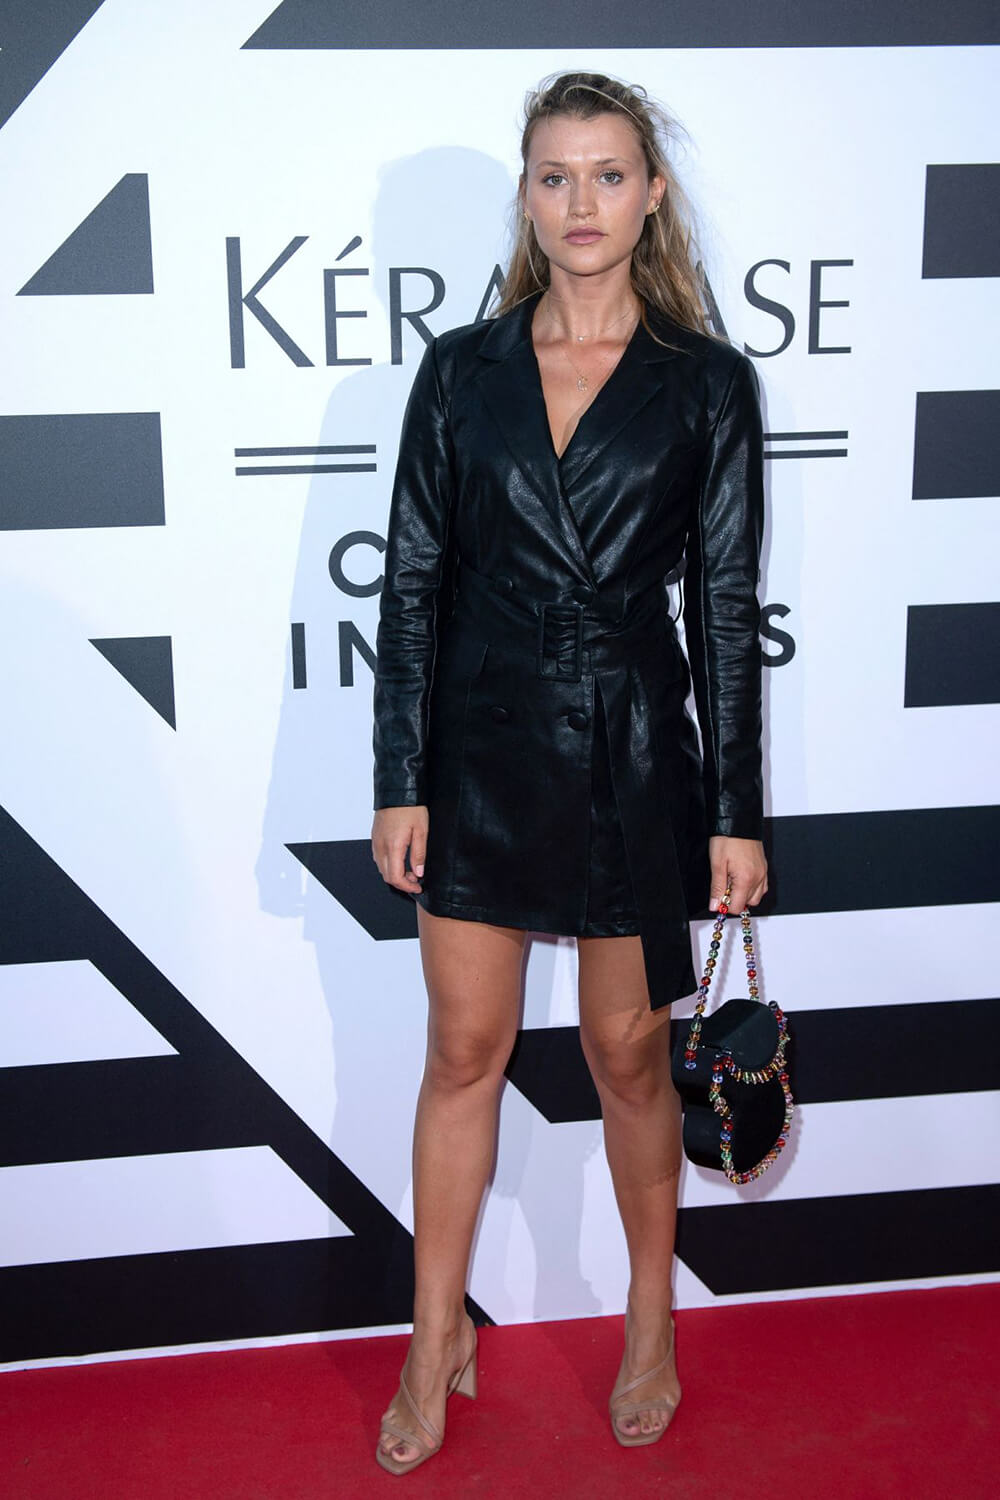 Chloe Lecareux attends Kerastase party